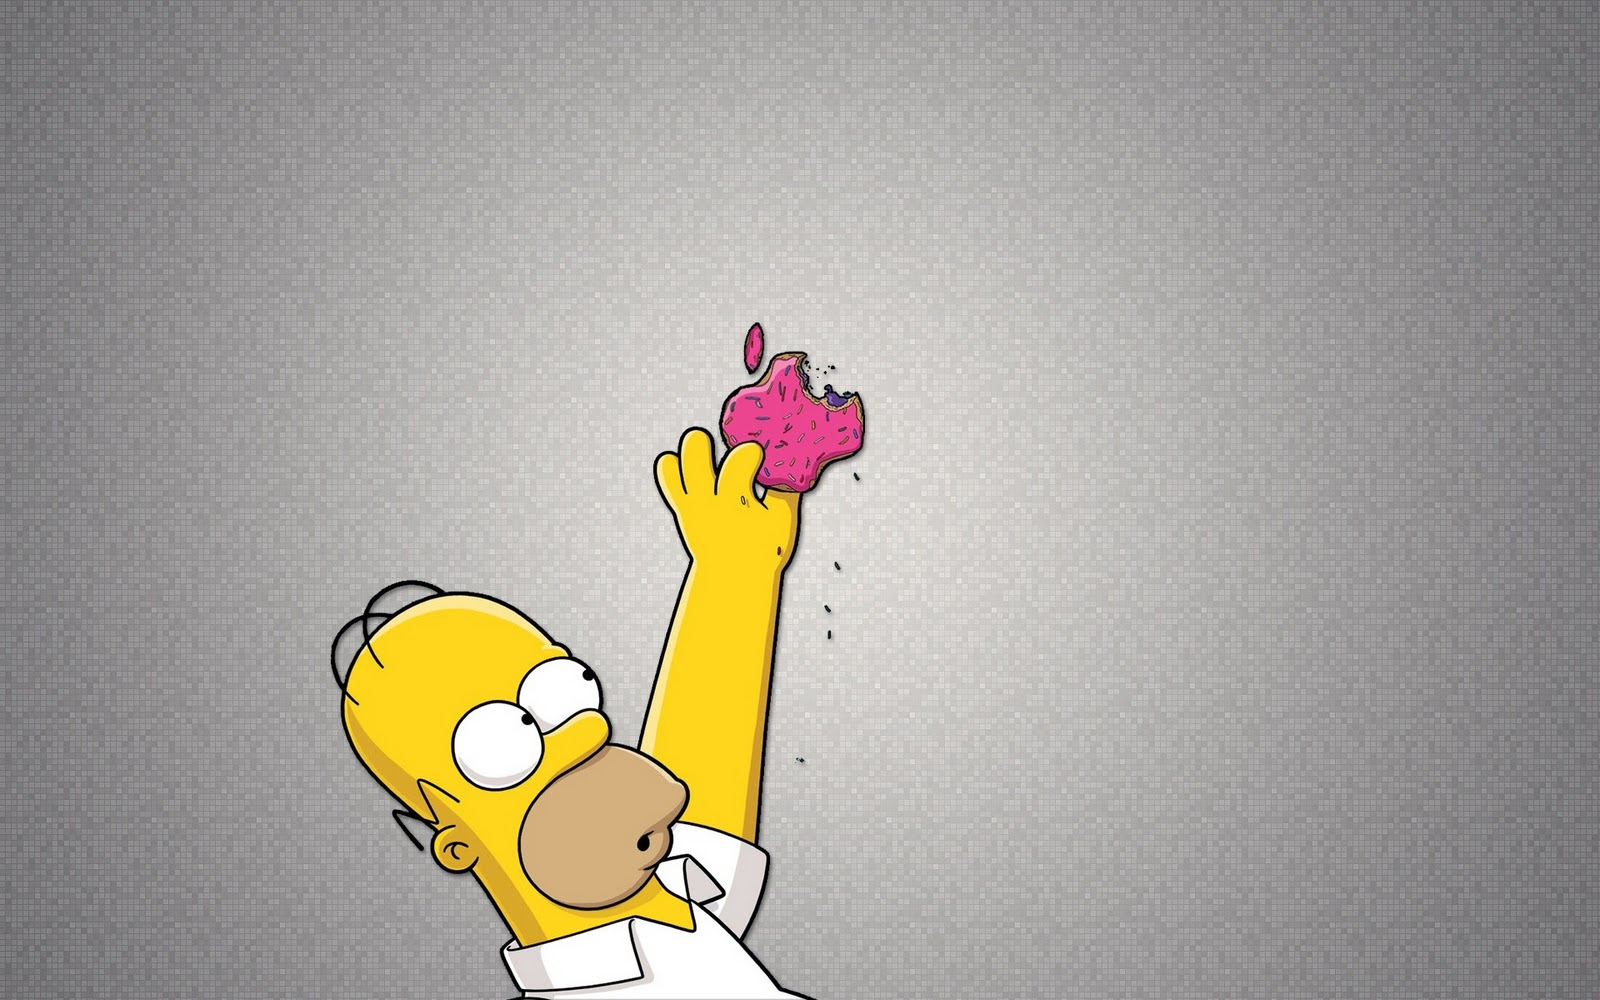 simpsons wallpapers simpsons wallpaper 17 homer simpson apple logo 1600x1000